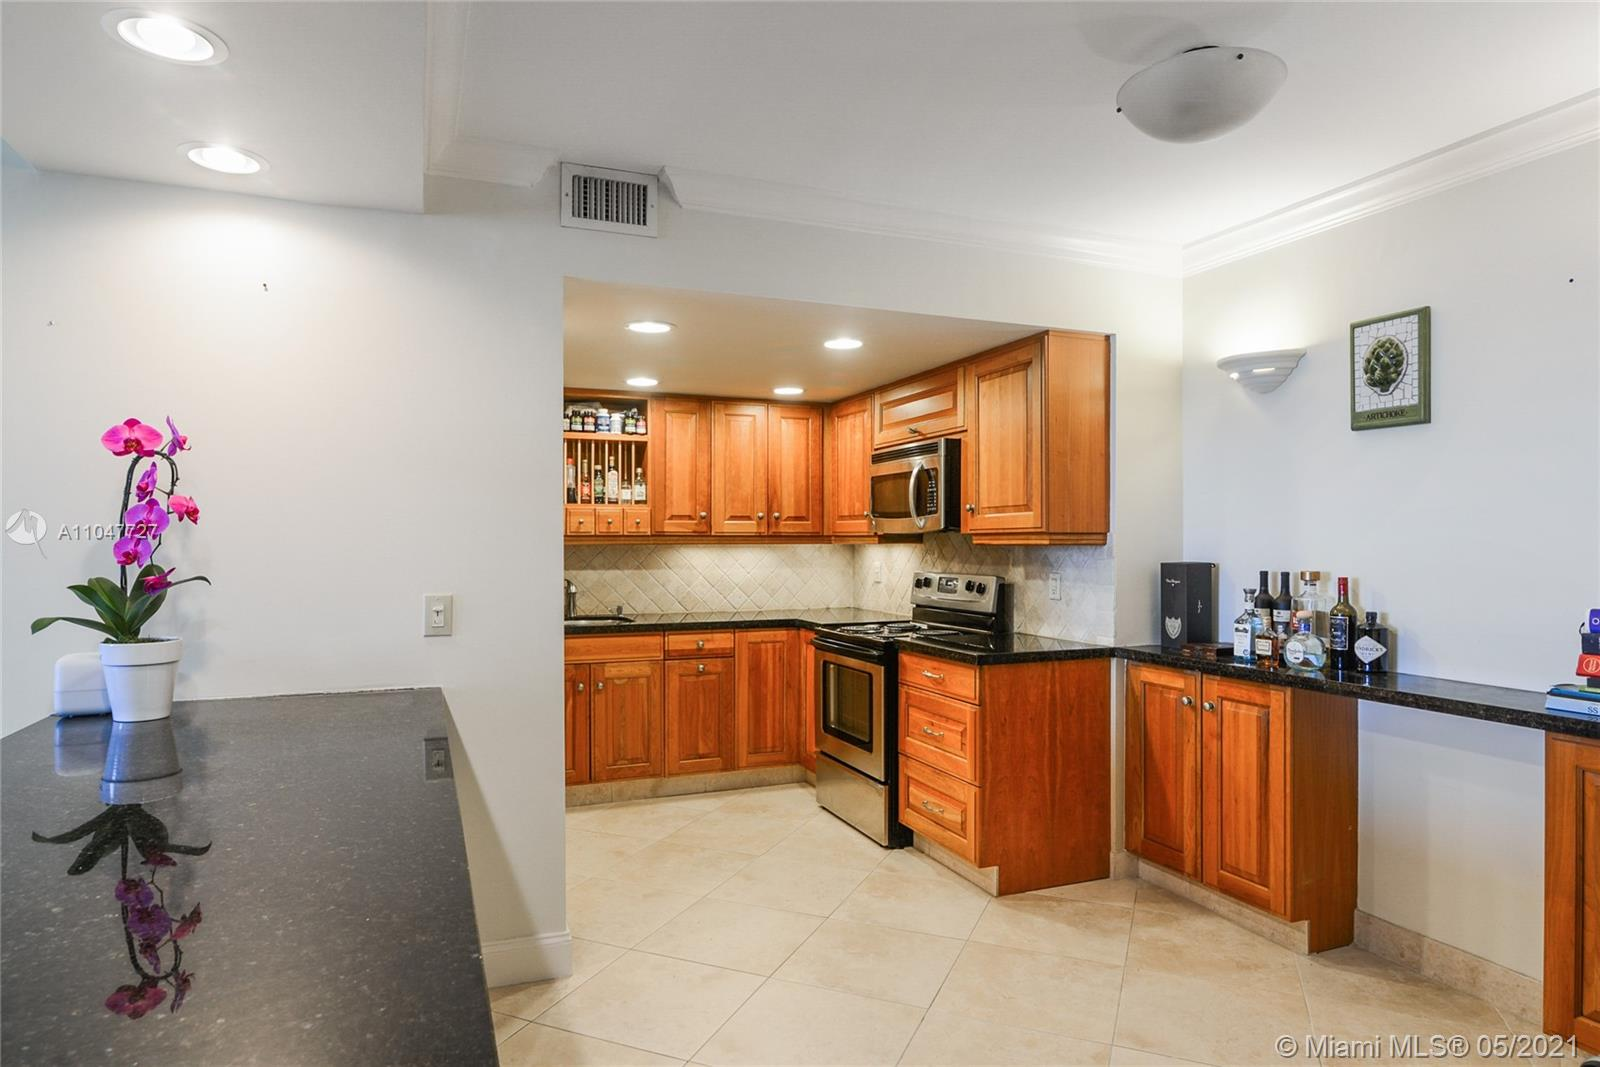 Photo of 9801 Collins Ave #14P, Bal Harbour, Florida, 33154 - Living-room, Open kitchen and entrance door.